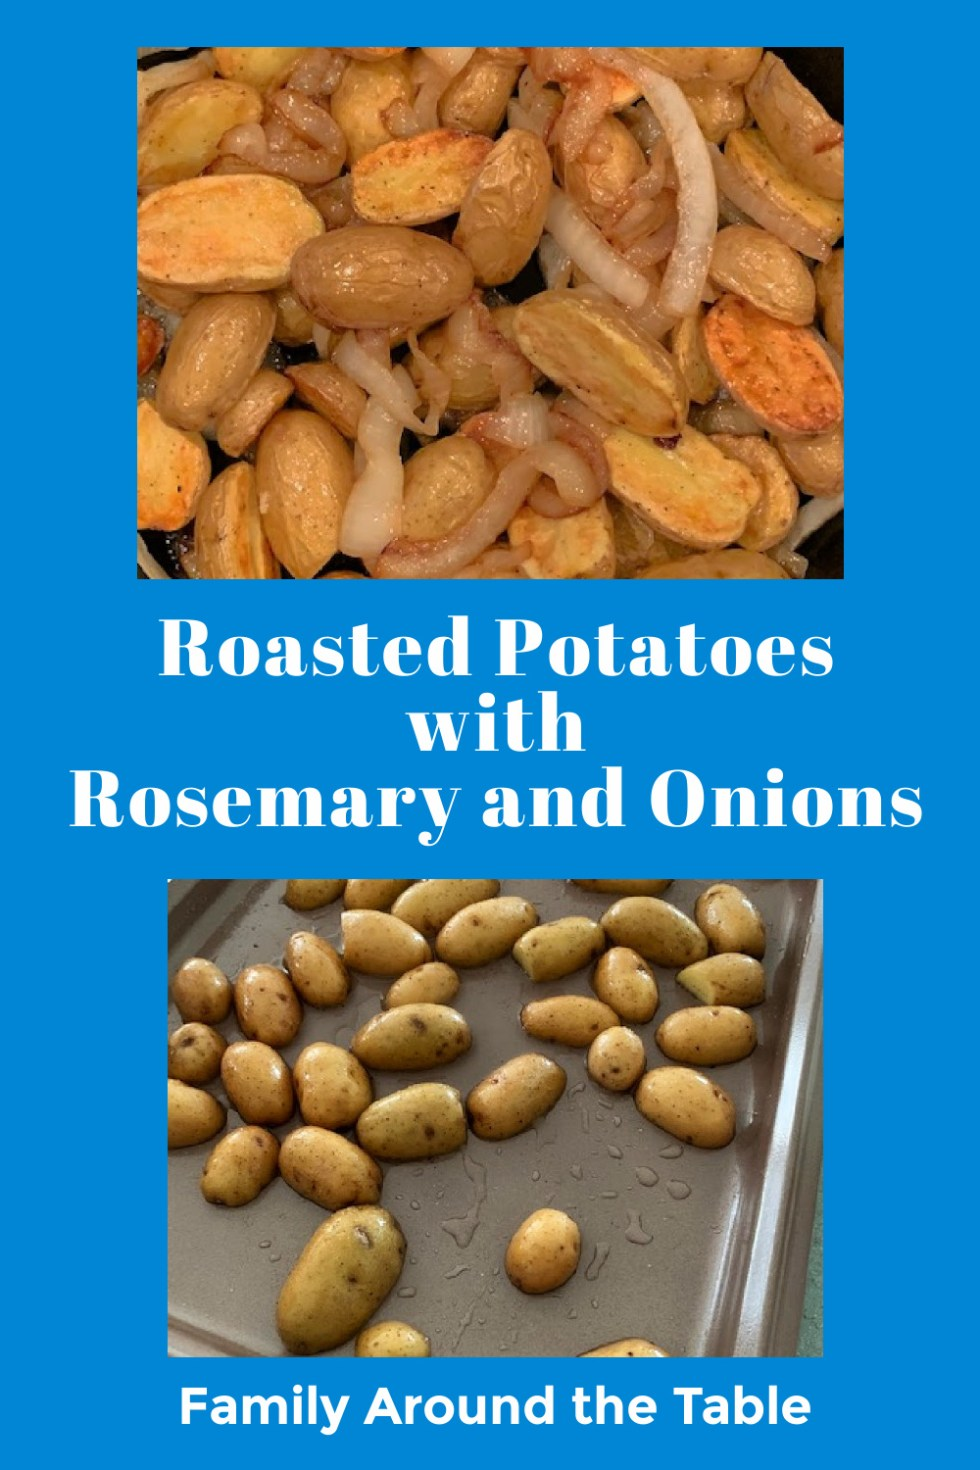 Roasted potatoes with rosemary and onions Pinterest image.